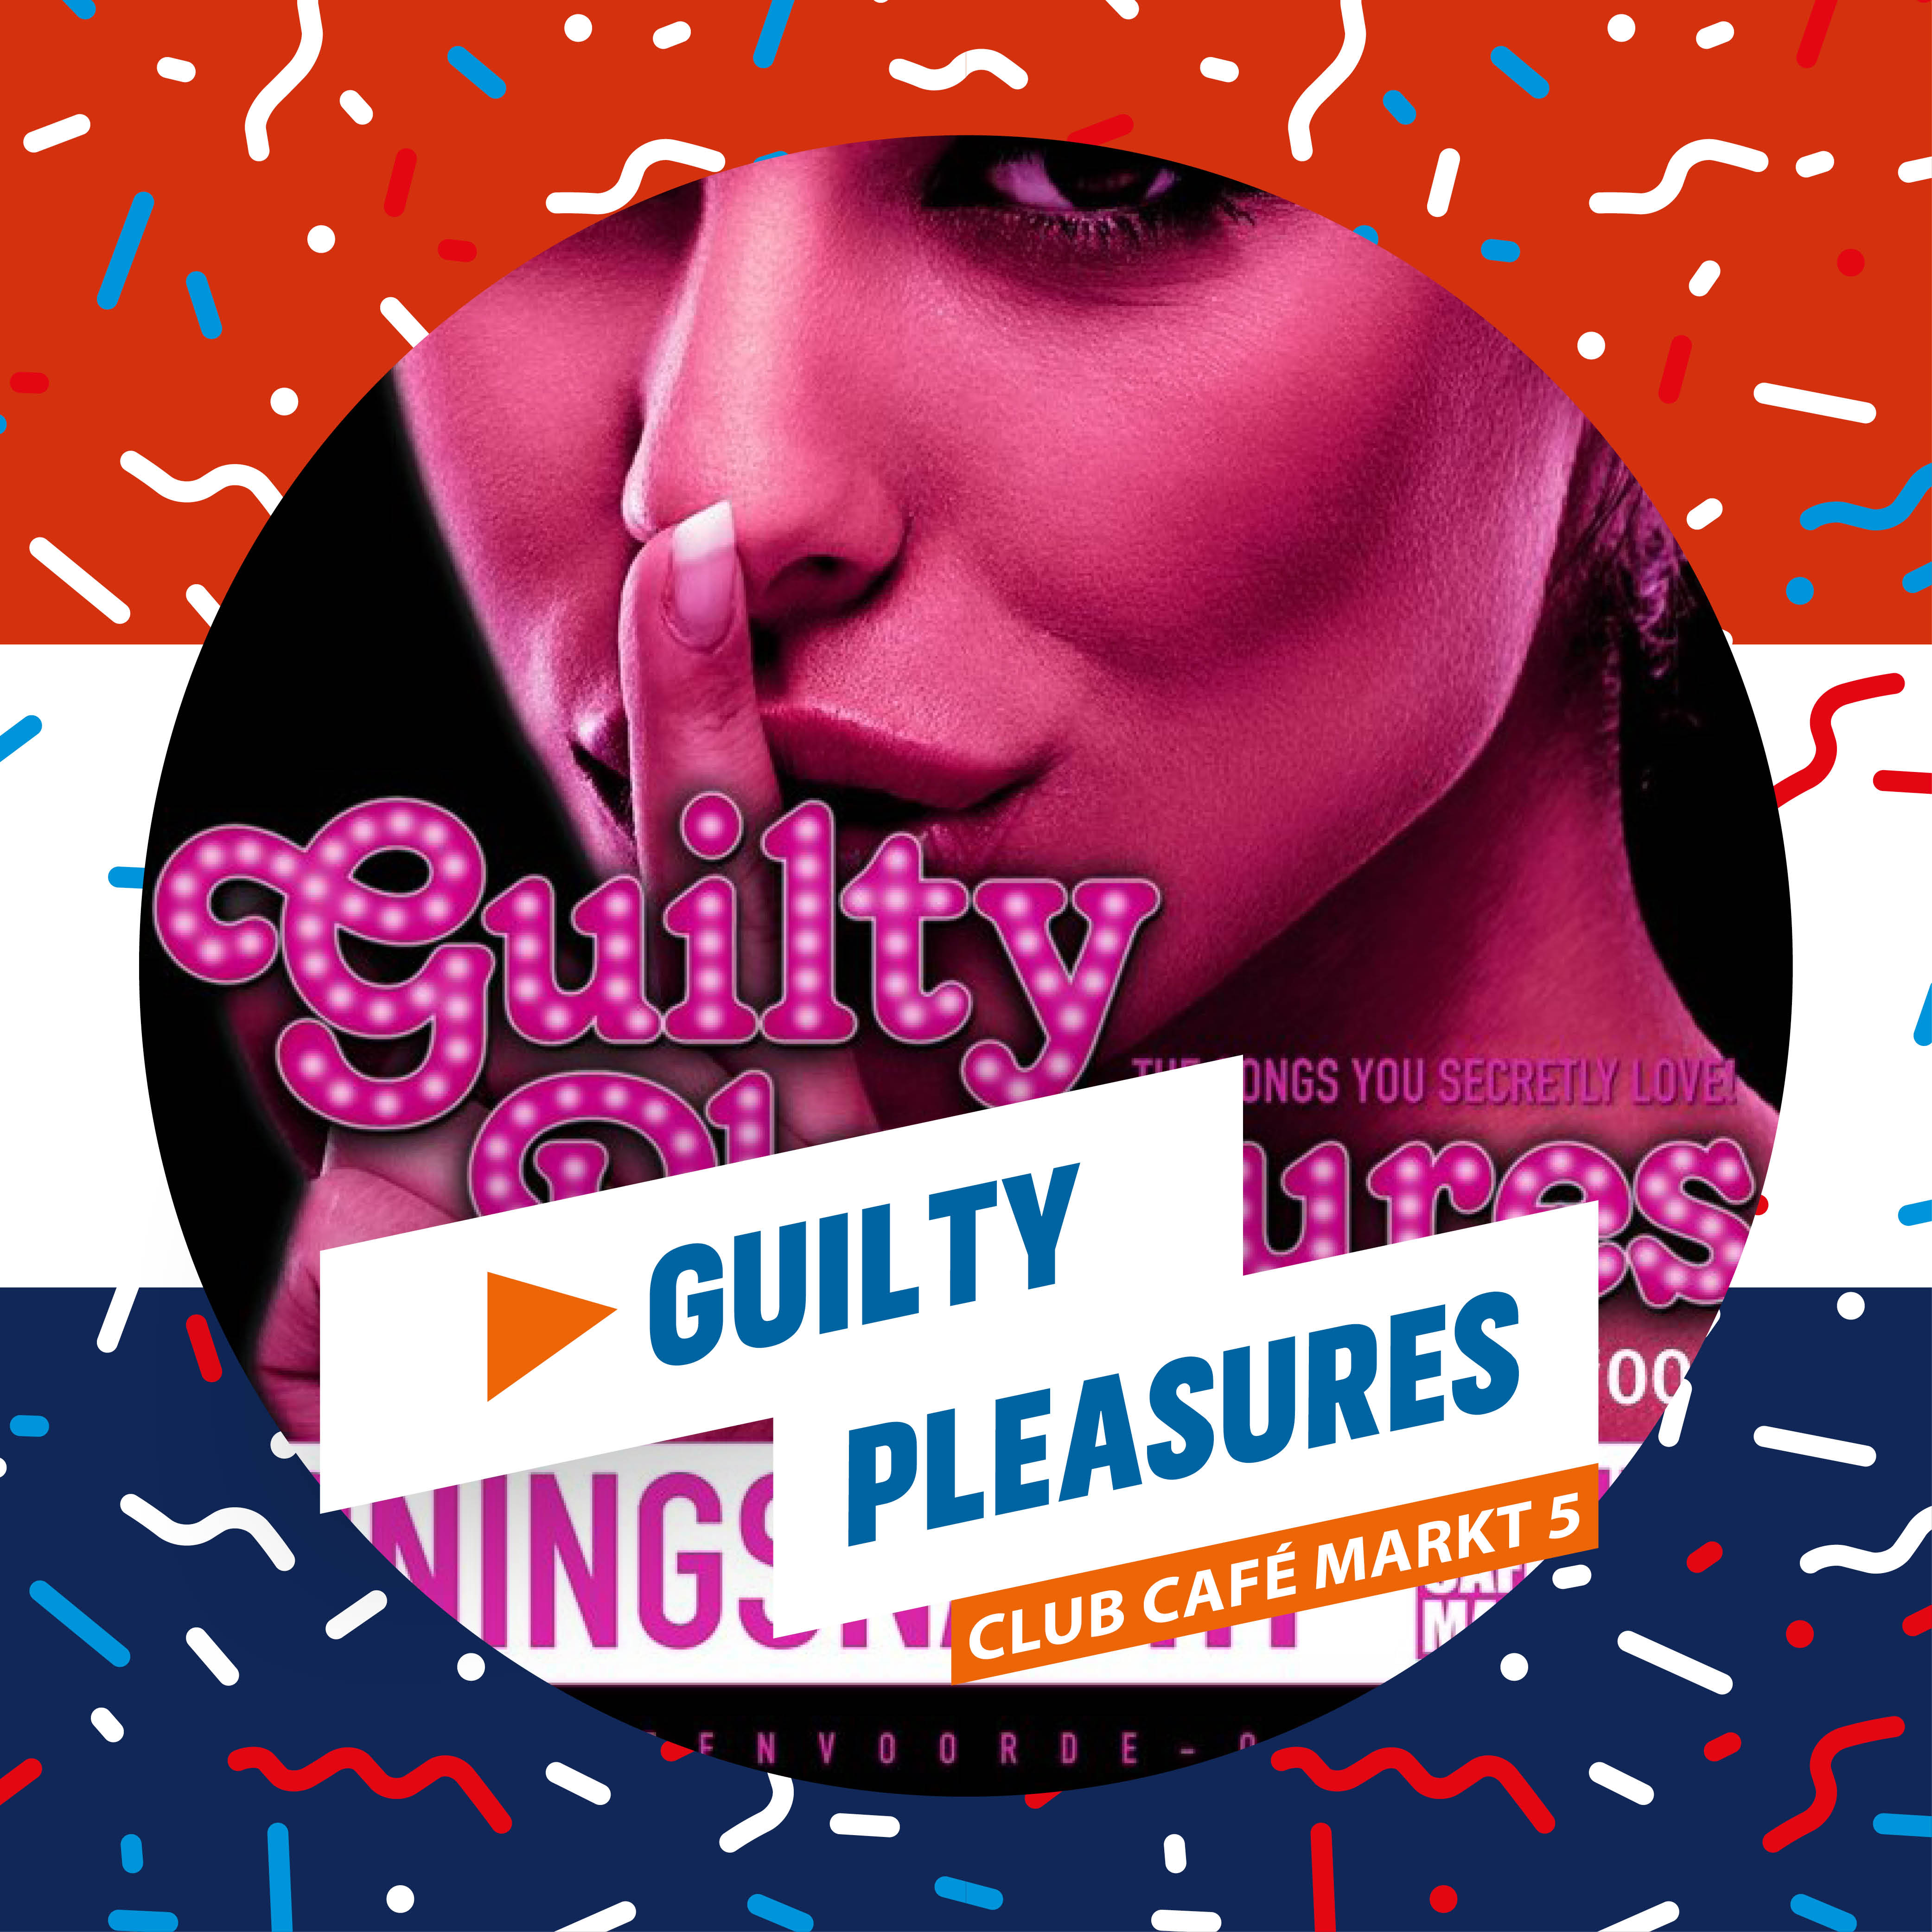 GUILTY PLEASURES MMV DJ NEWHOUSE